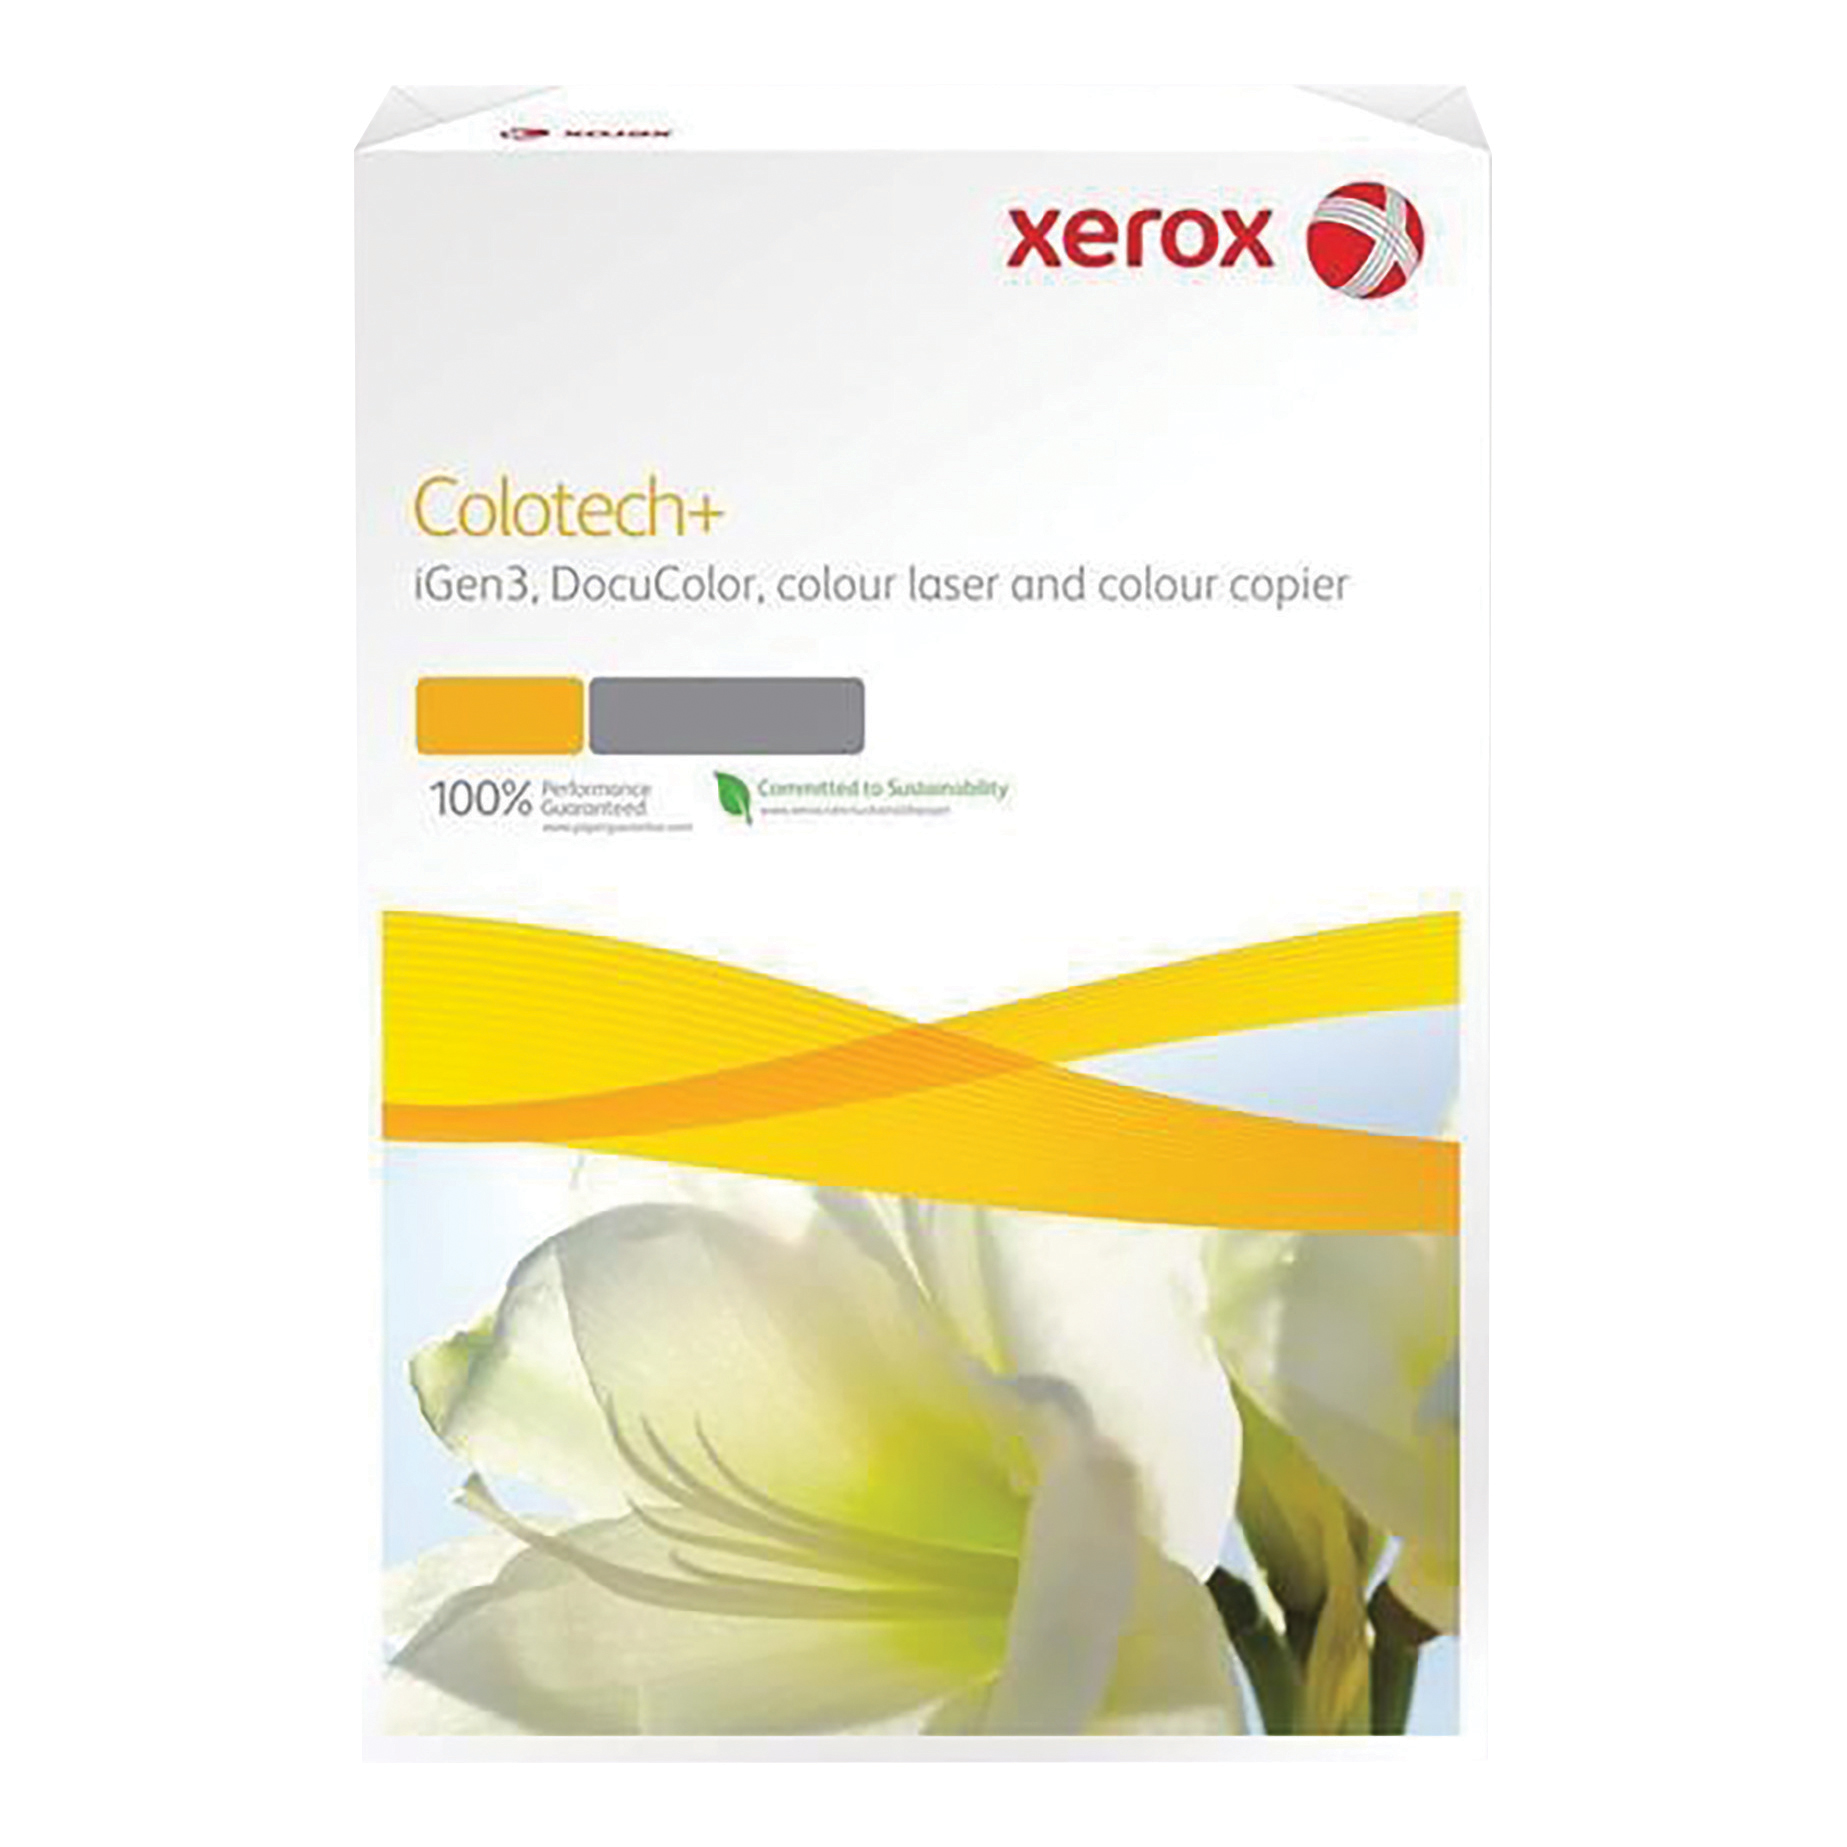 Xerox Colotech+ Digital Colour Paper Premium Ream-Wrapped 120gsm A4 White Ref 63761 500 Sheets